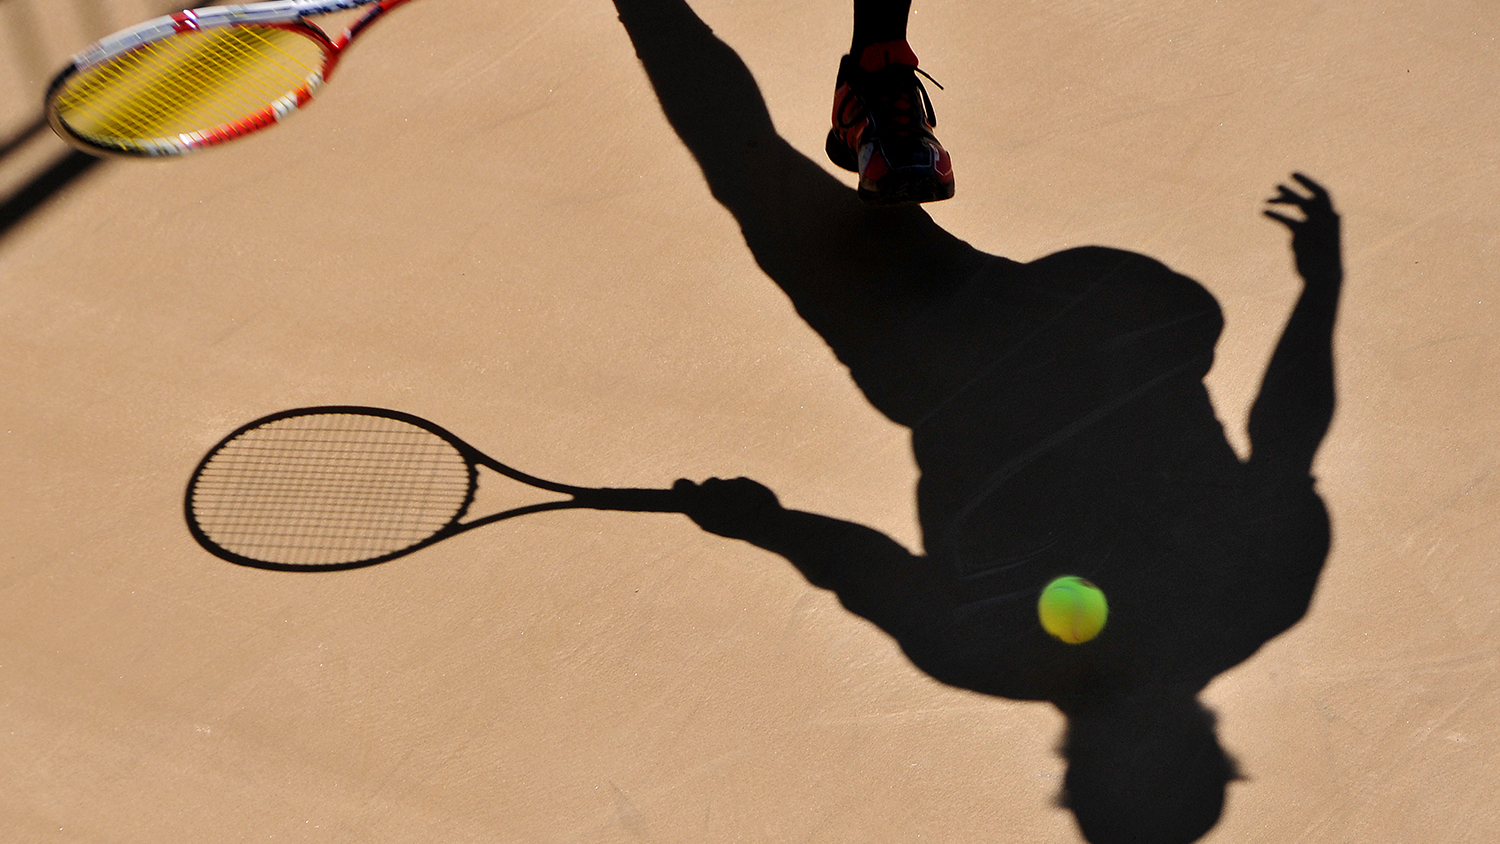 Photo of a tennis ball being struck by a tennis racket.